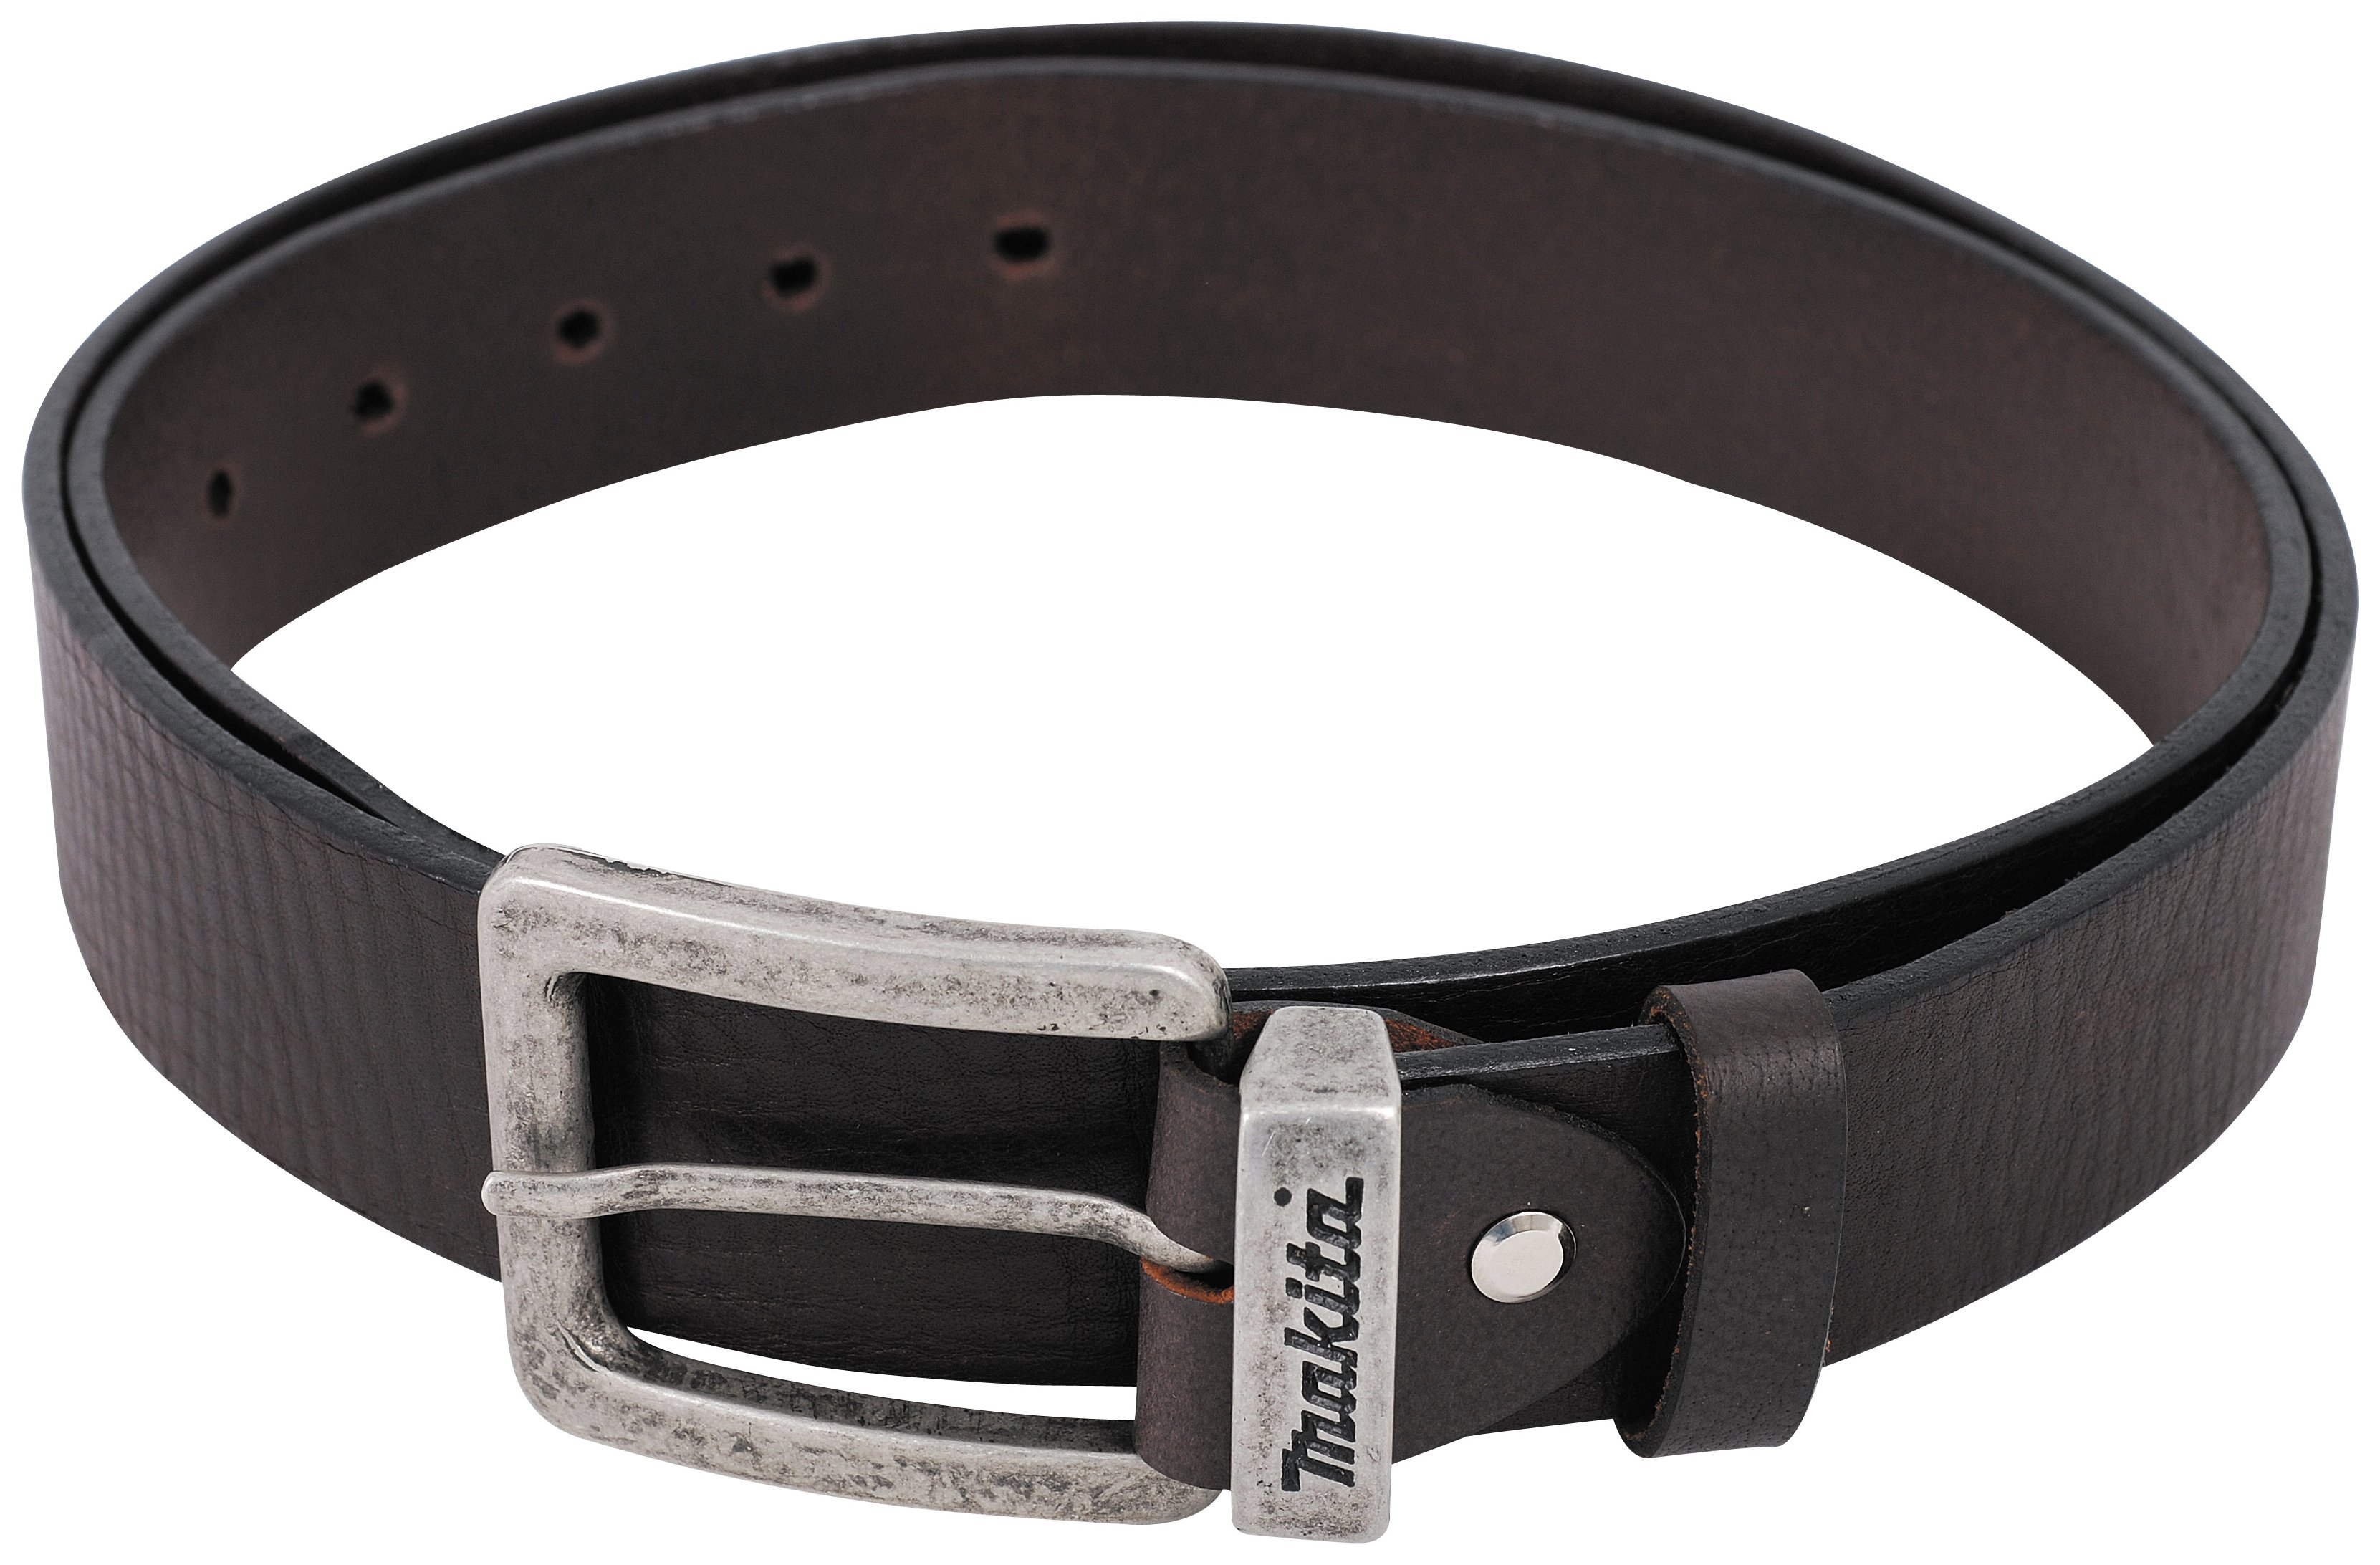 Image of Makita Brown Leather Belt 28 inch - 38 inch.